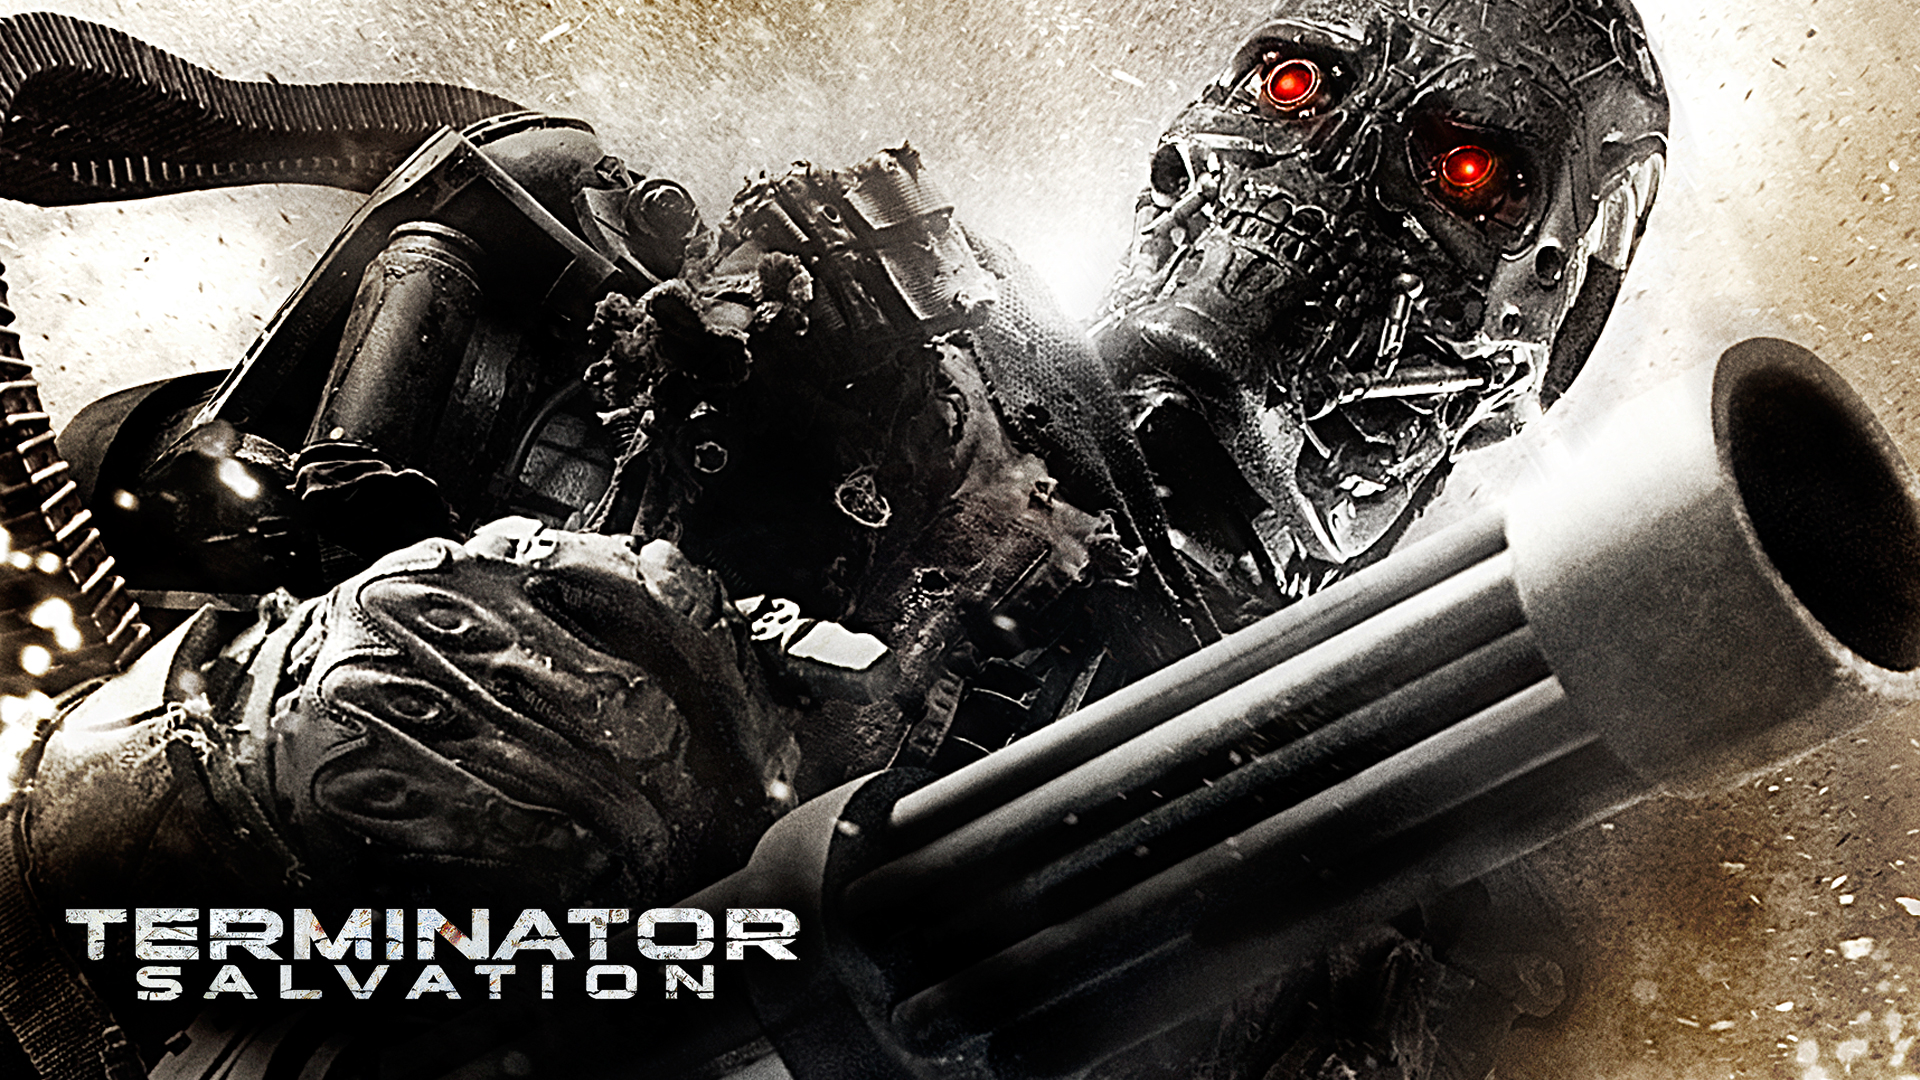 hd wallpapers of terminator salvation Download terminator salvation wallpaper hd free for iphone android desktop tablet or mobile.